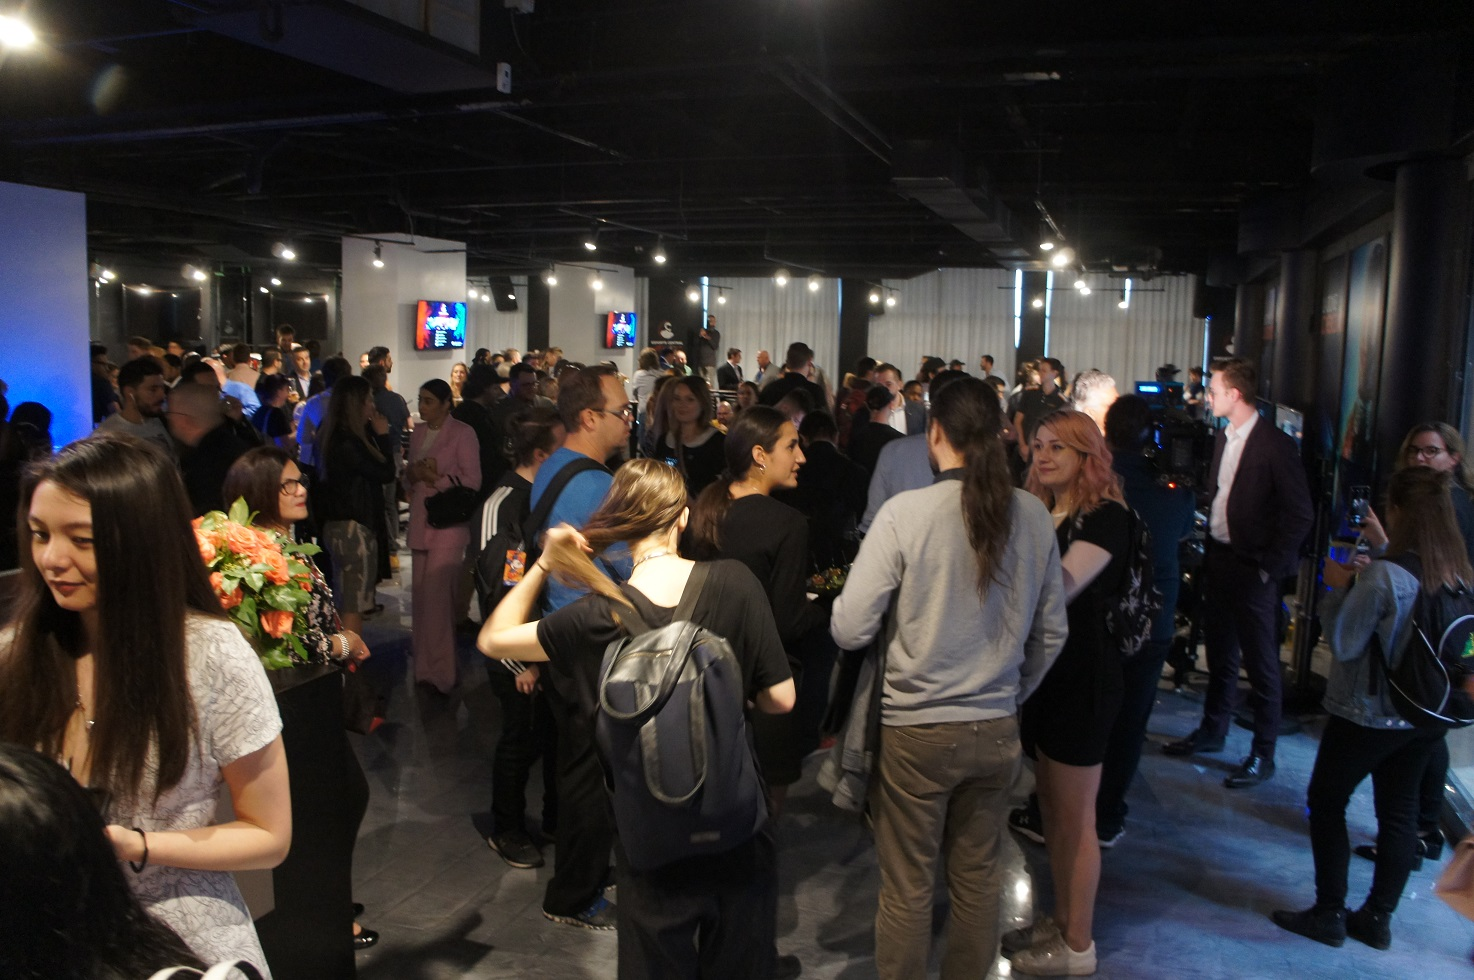 esports-central-arena-foule.jpg